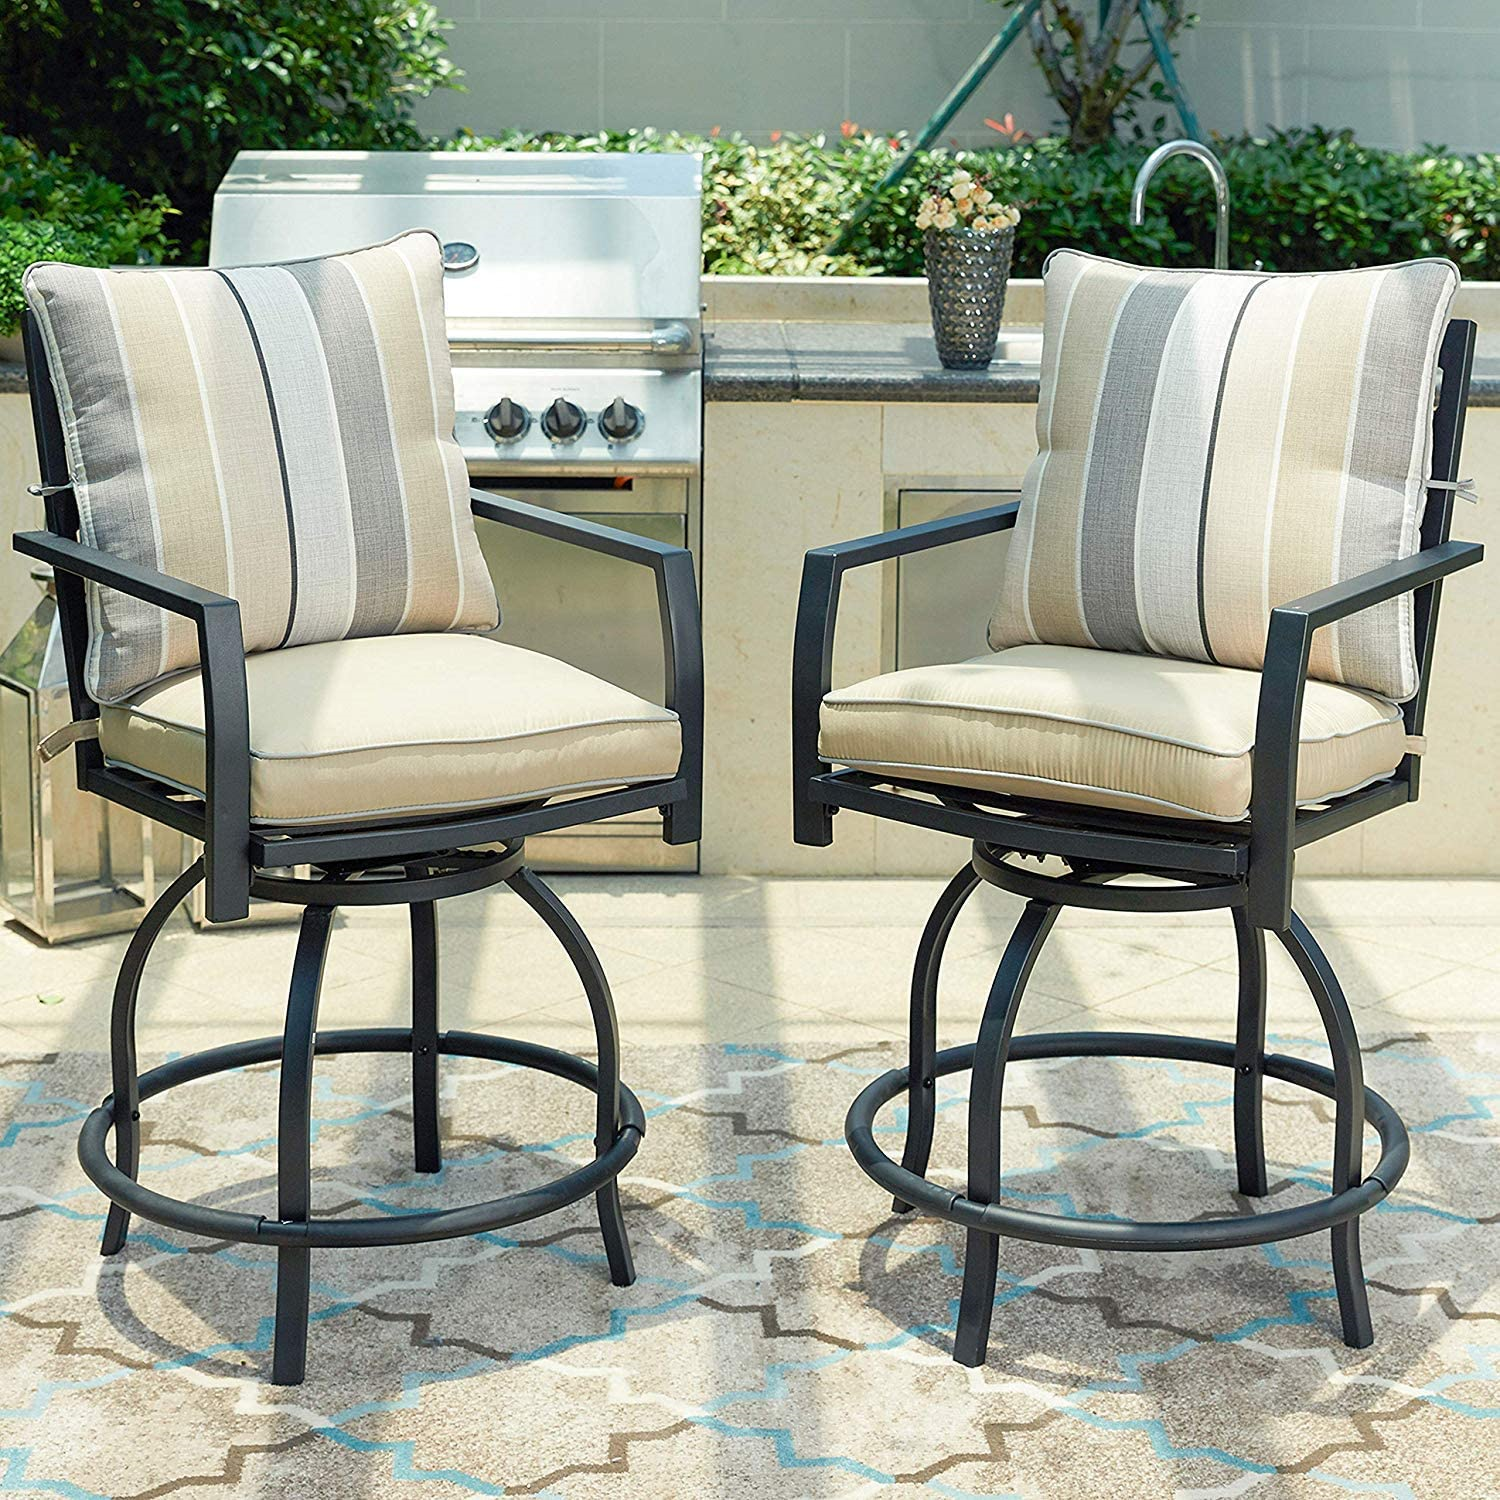 Image of: Lokatse Home Patio Bar Height Chairs Outdoor Swivel Bar Stools Chairs With Seat For Sale Online